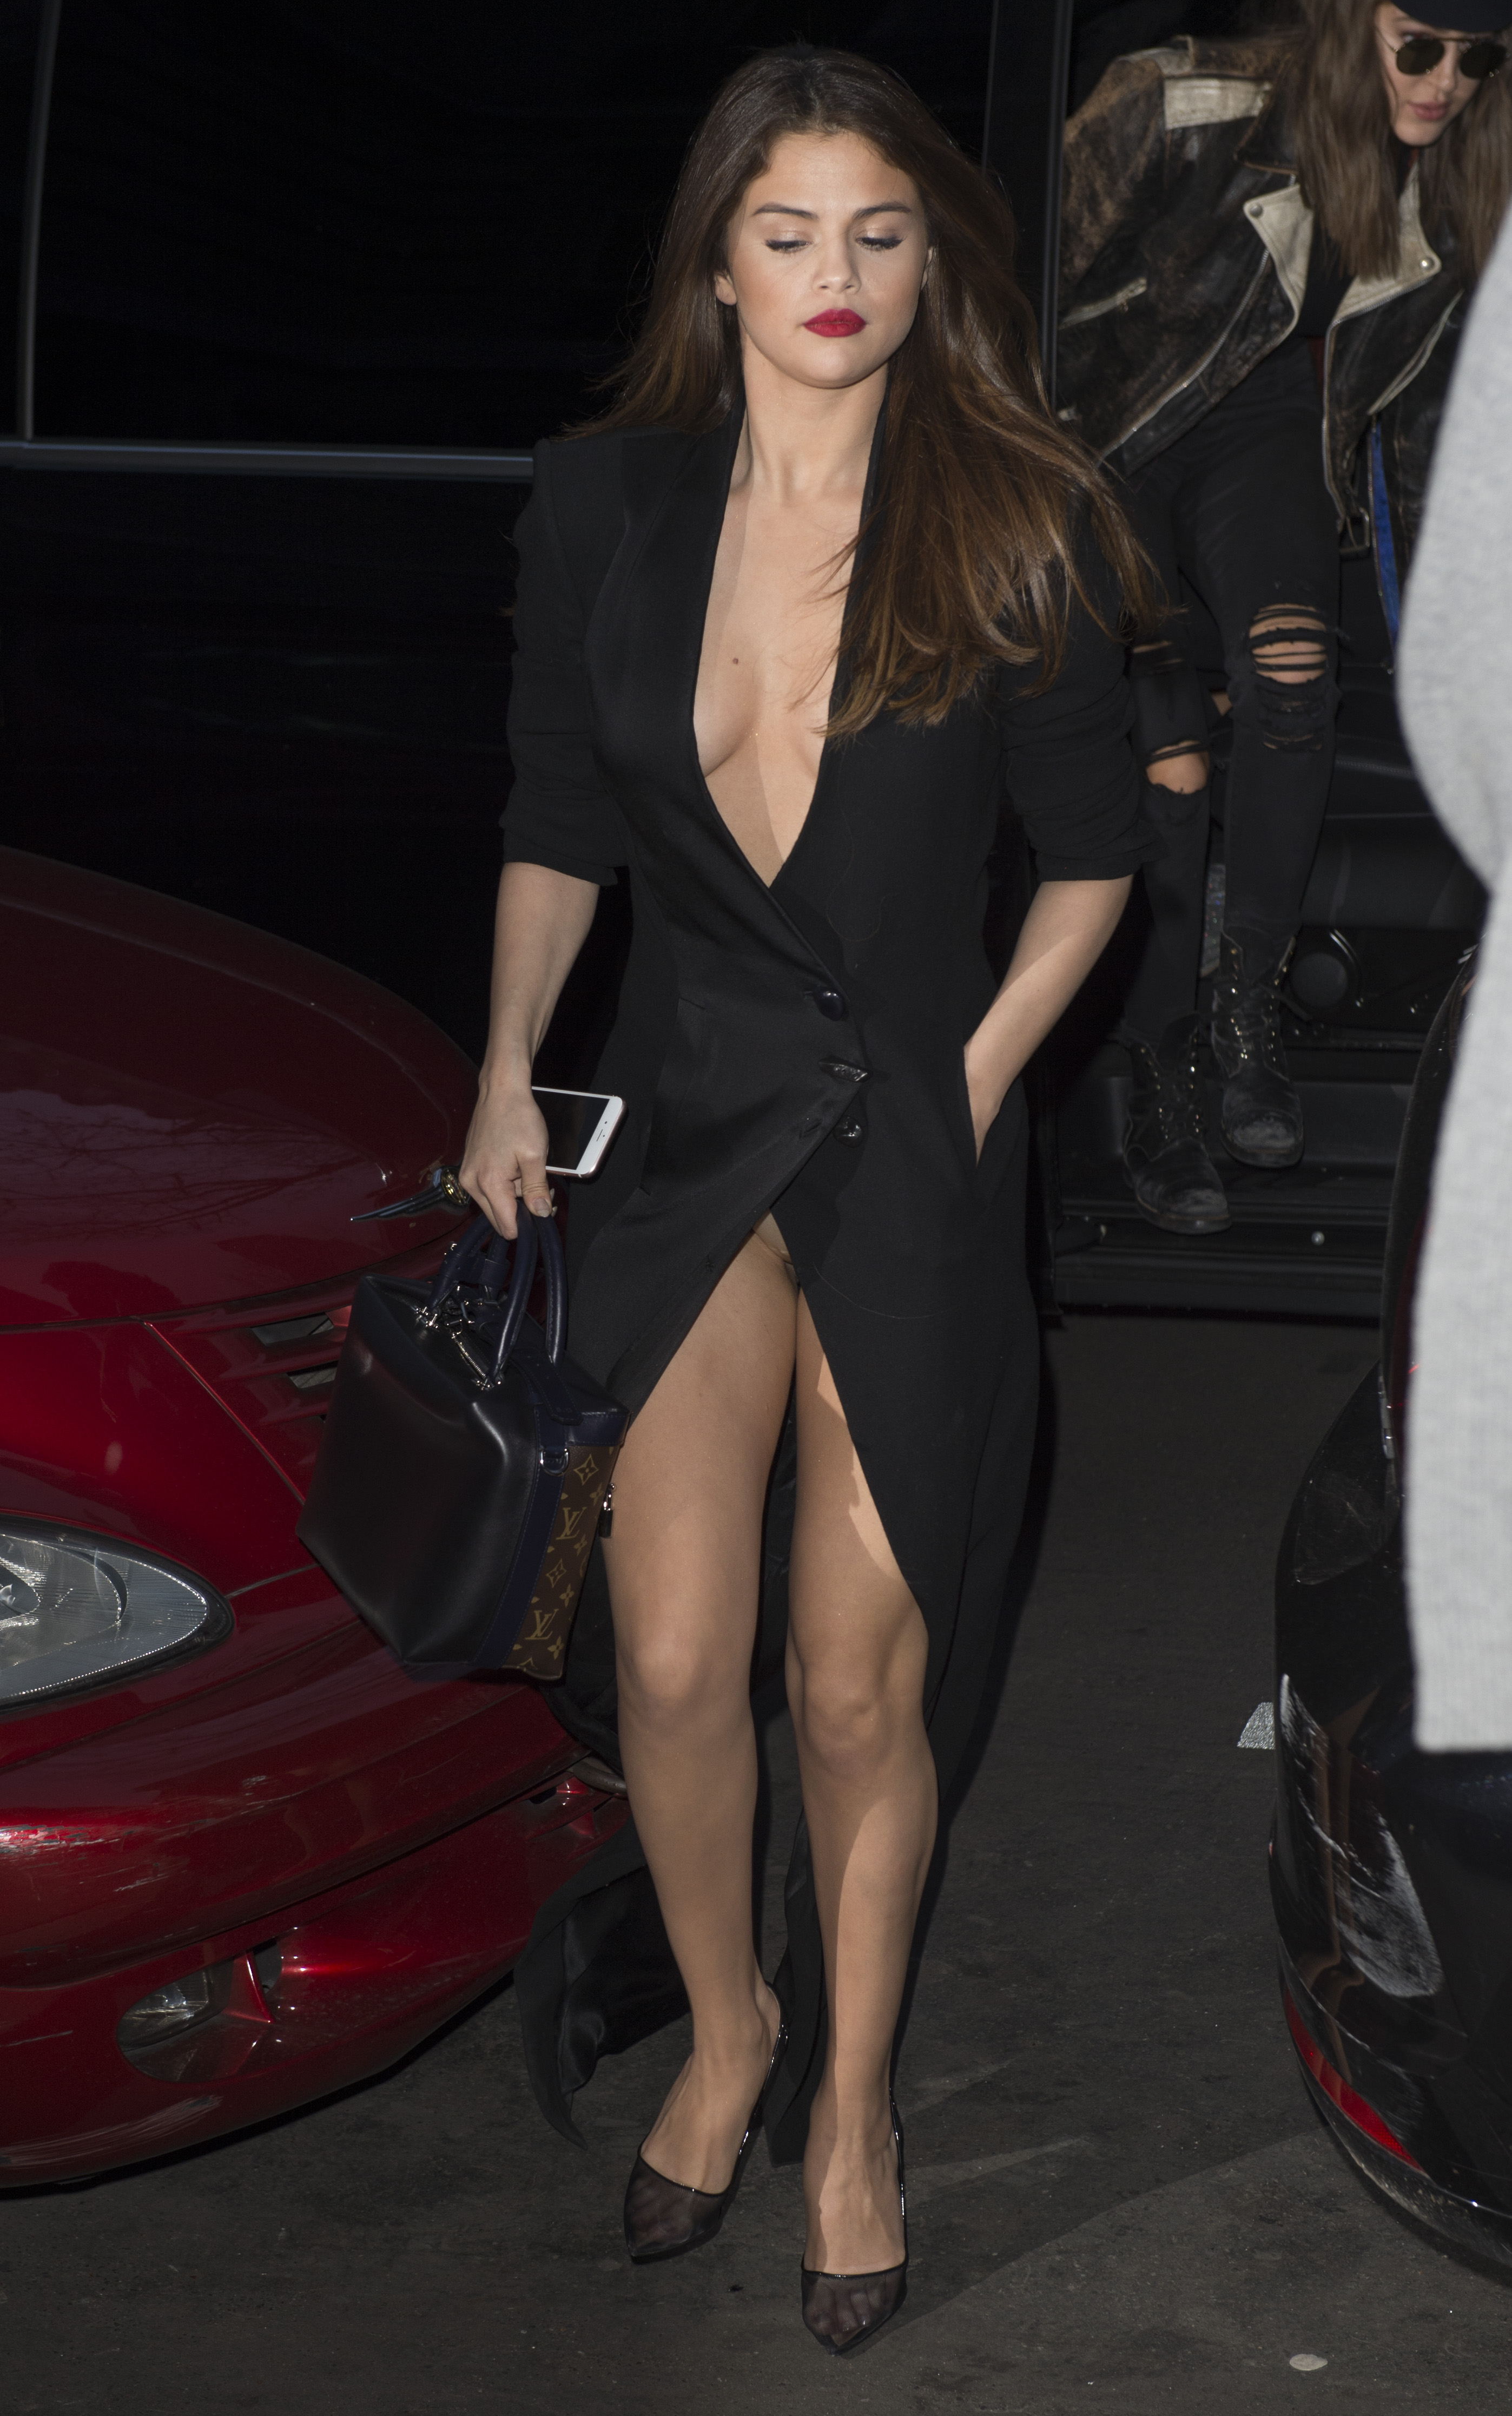 Amy Adams Upskirt selena-gomez-cleavage-and-upskirt-in-paris-30 | celebrity